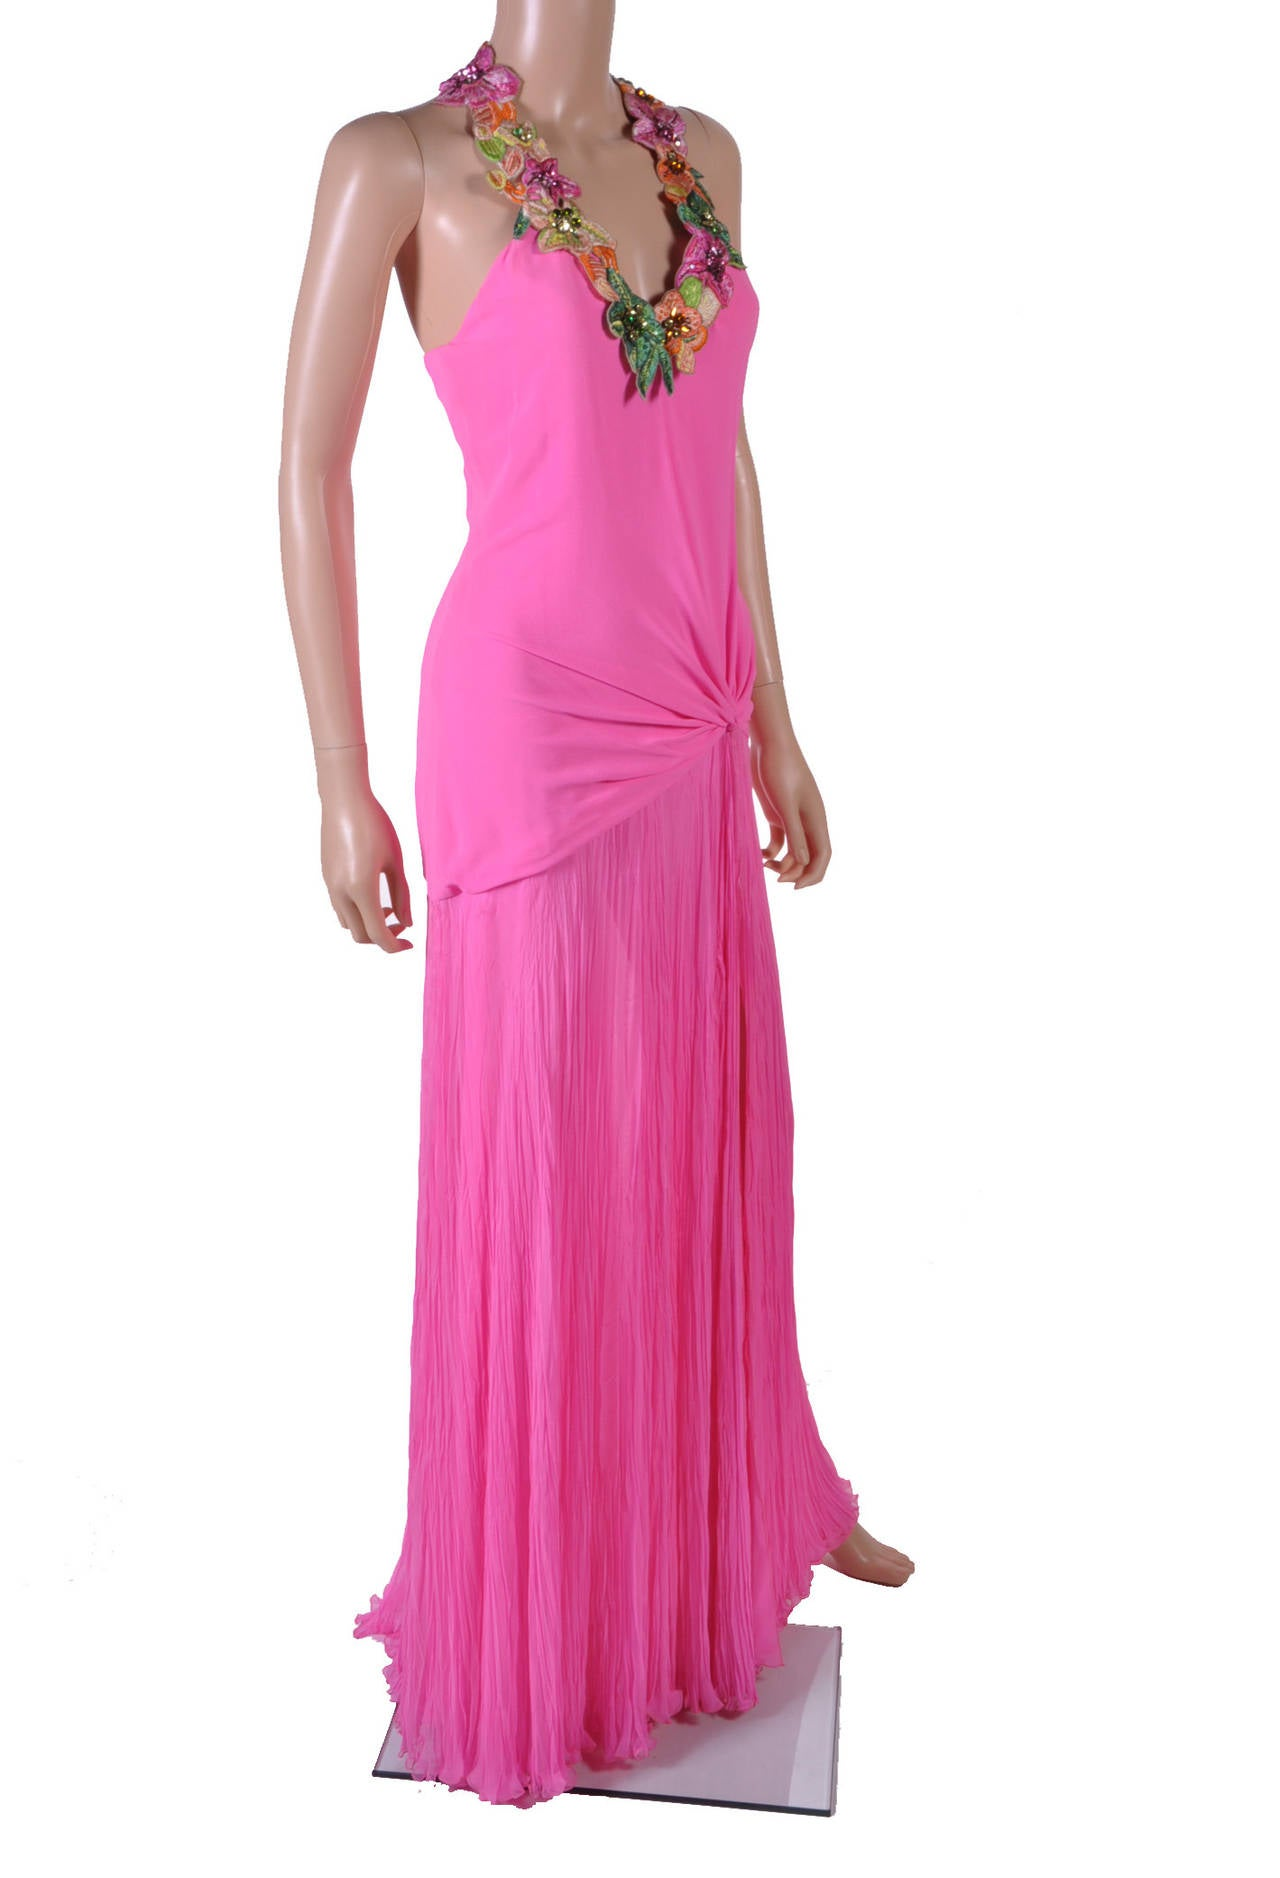 New VERSACE Hot Pink Embellished Gown For Sale at 1stdibs